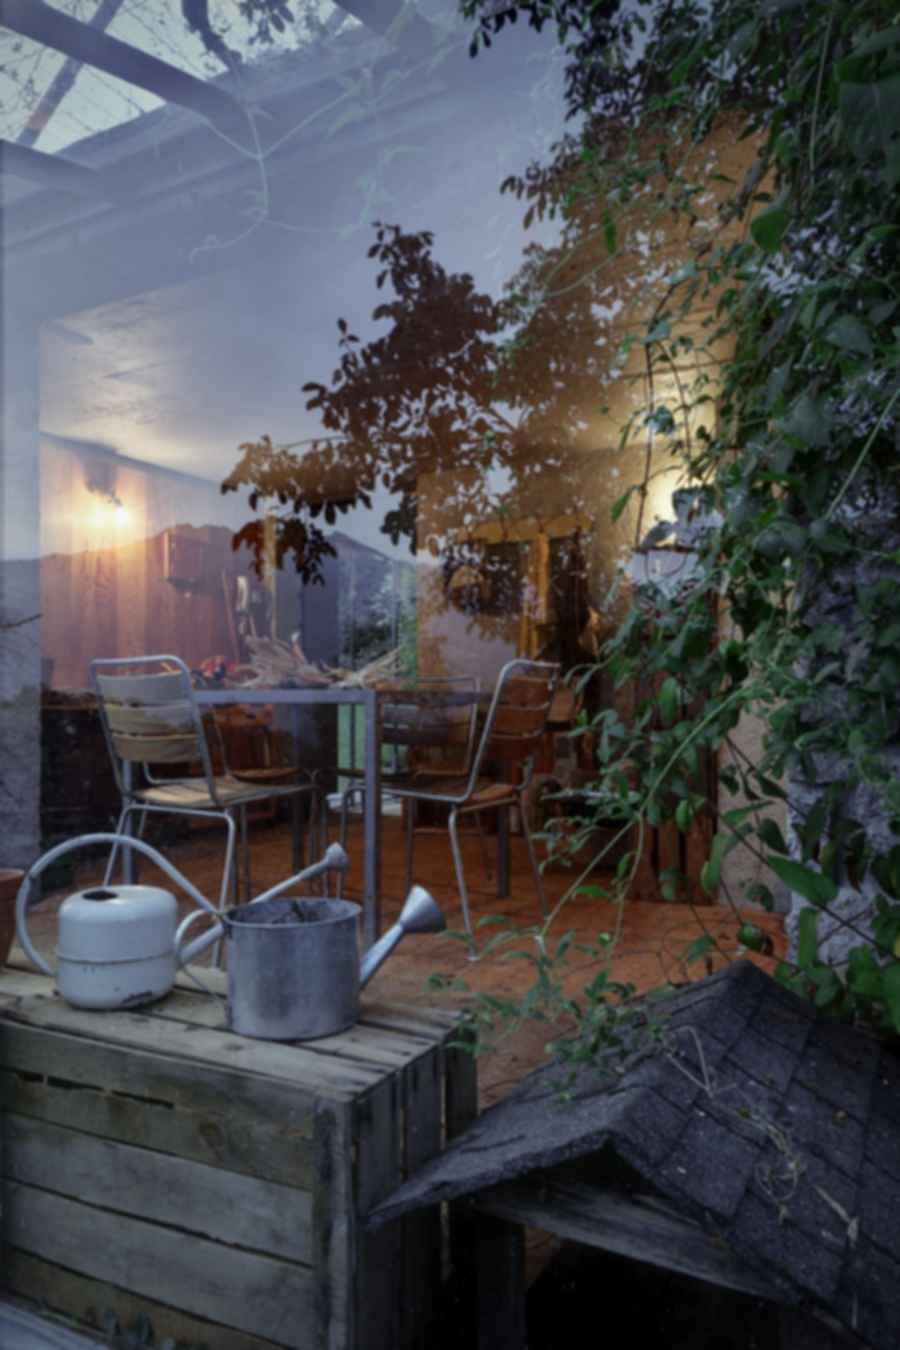 The Green Box - Outdoor Elements